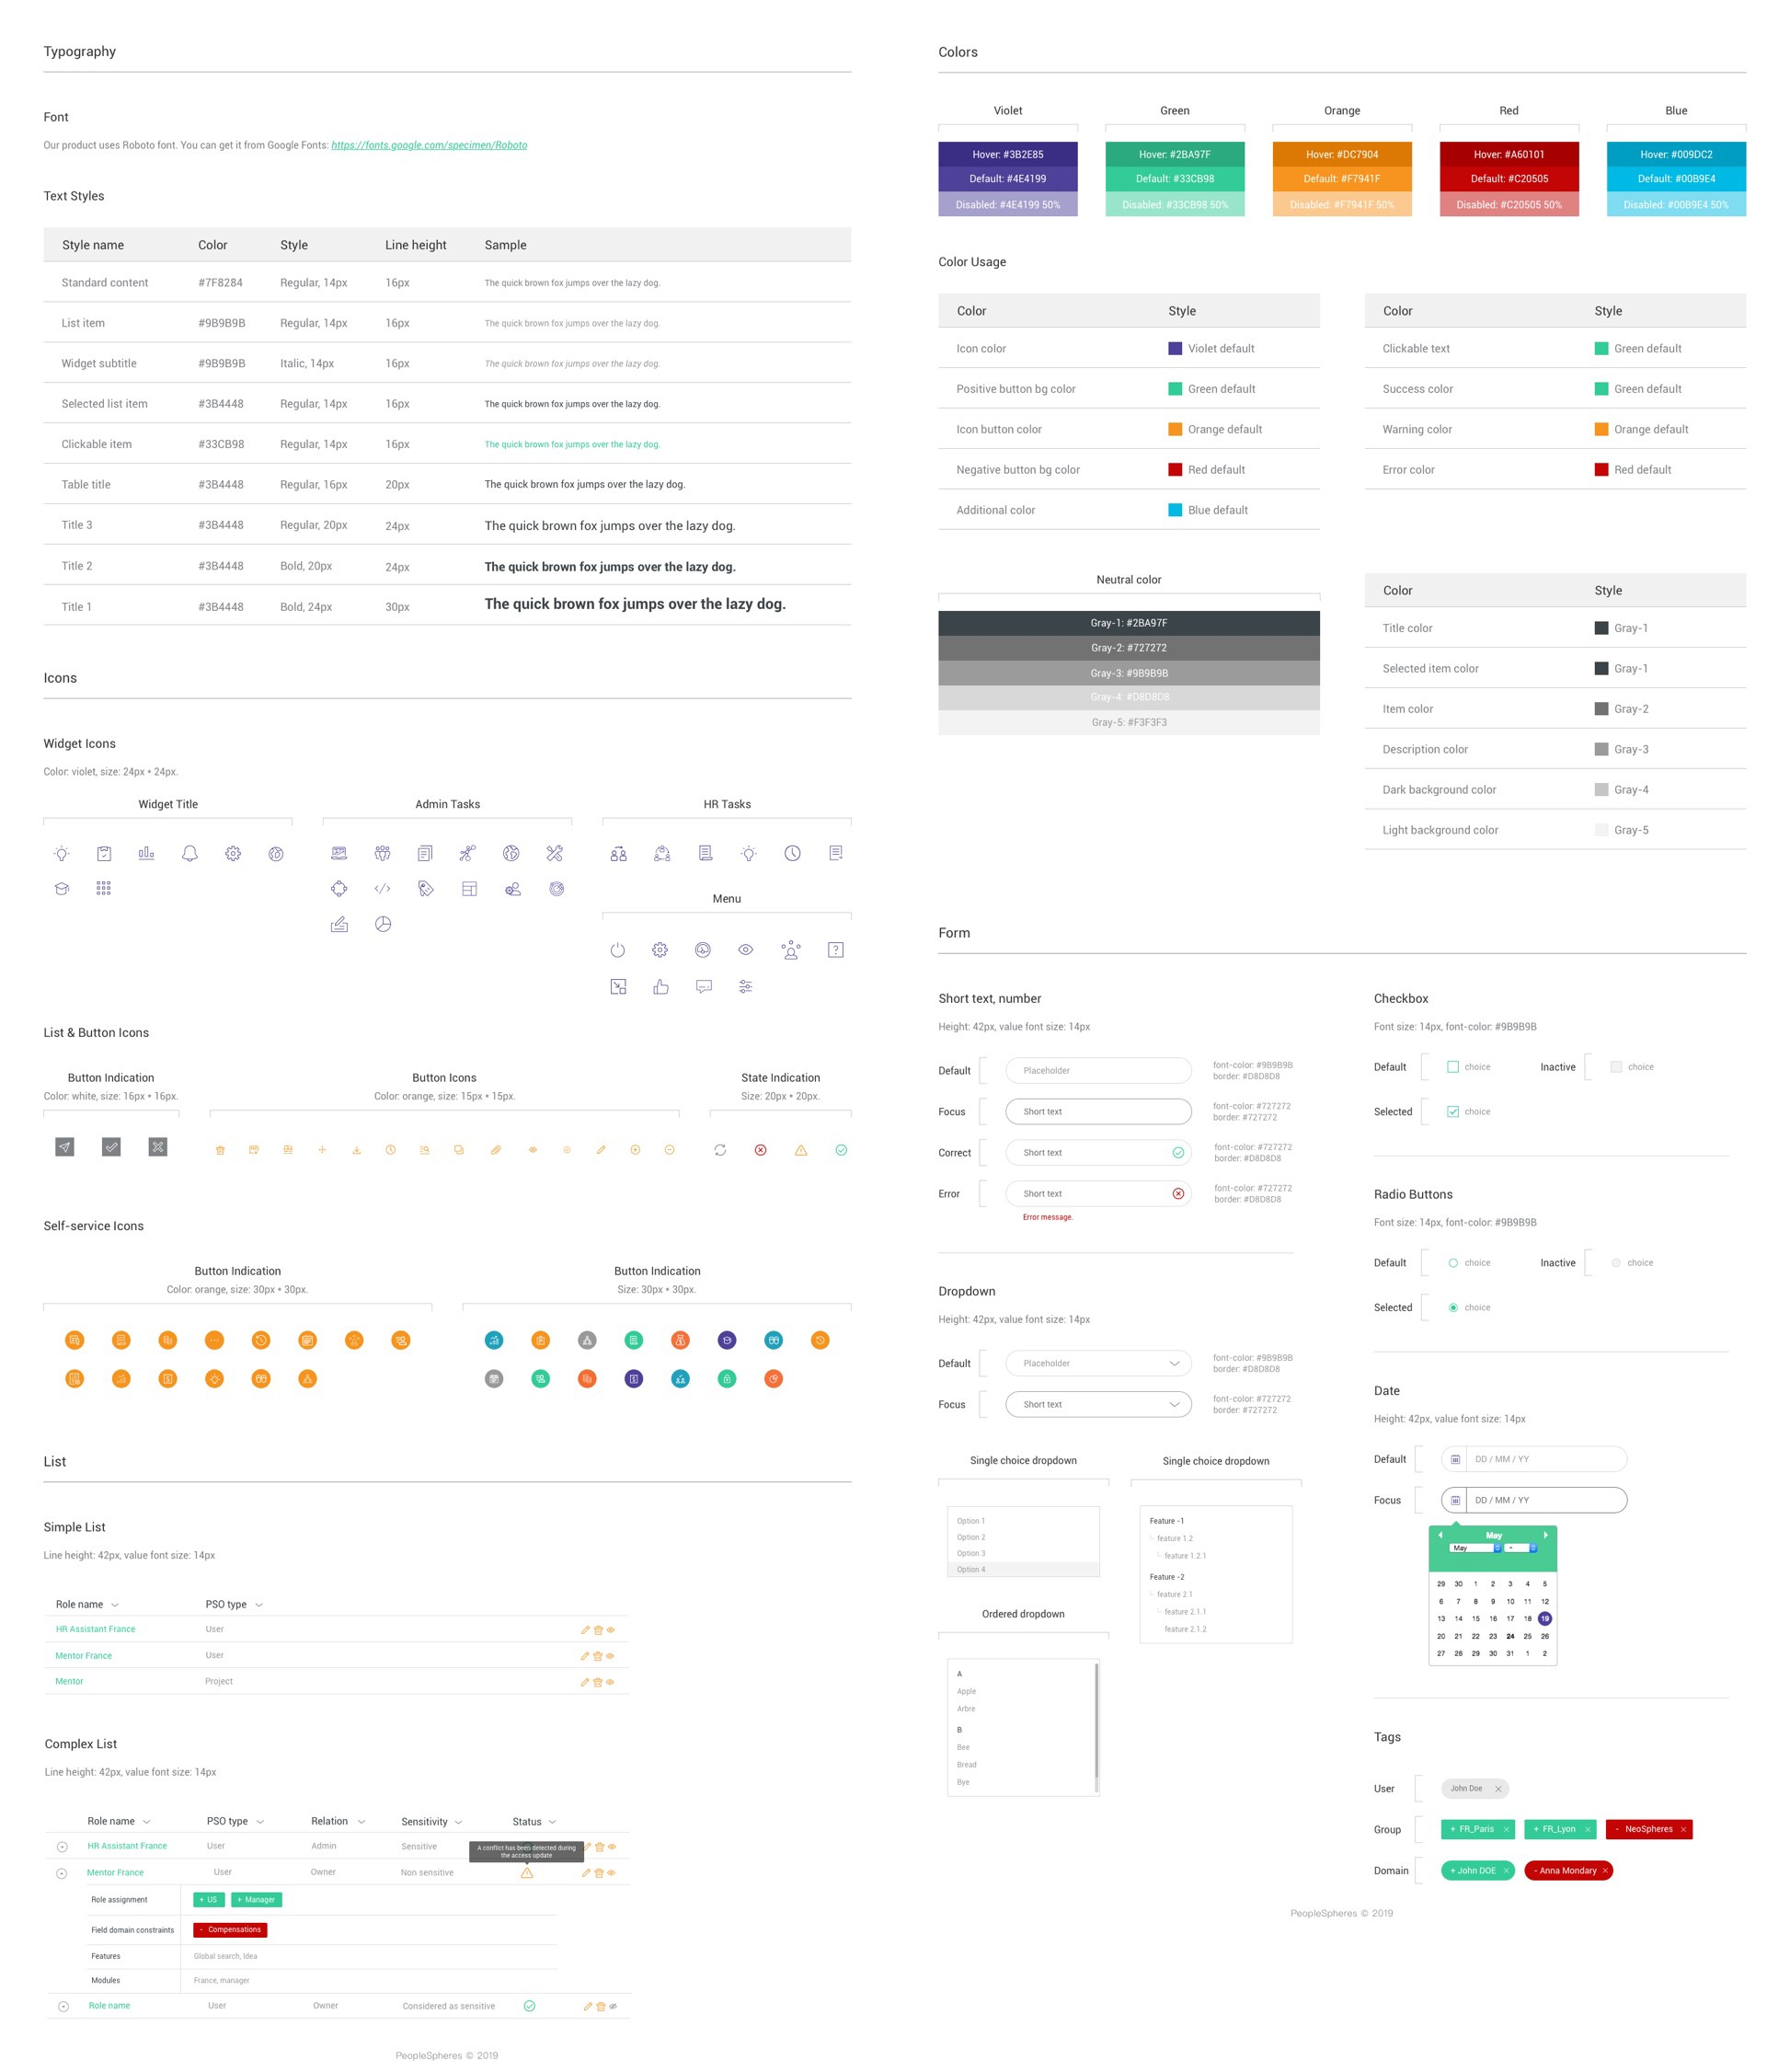 What I Ve Learned From Designing An Hr System A Ux Case Study By Yifan Ding Ux Collective